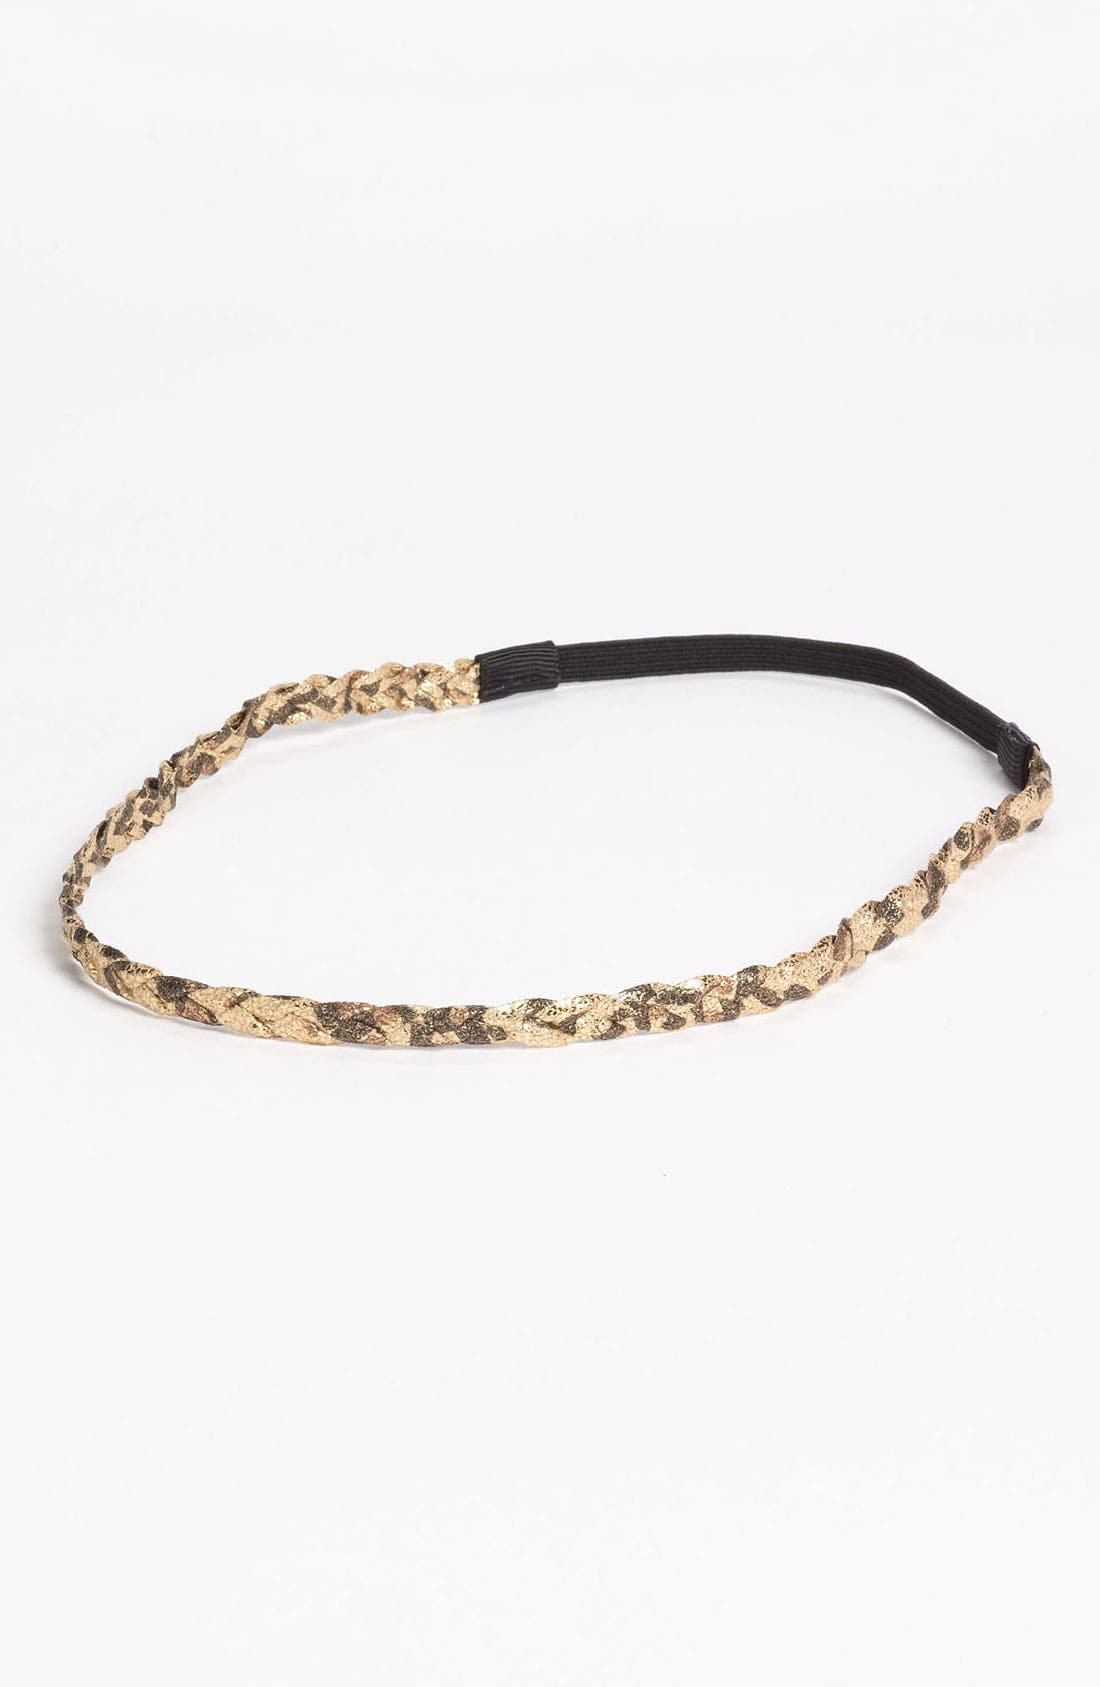 Alternate Image 1 Selected - Under One Sky Camo Sparkle Braided Headband